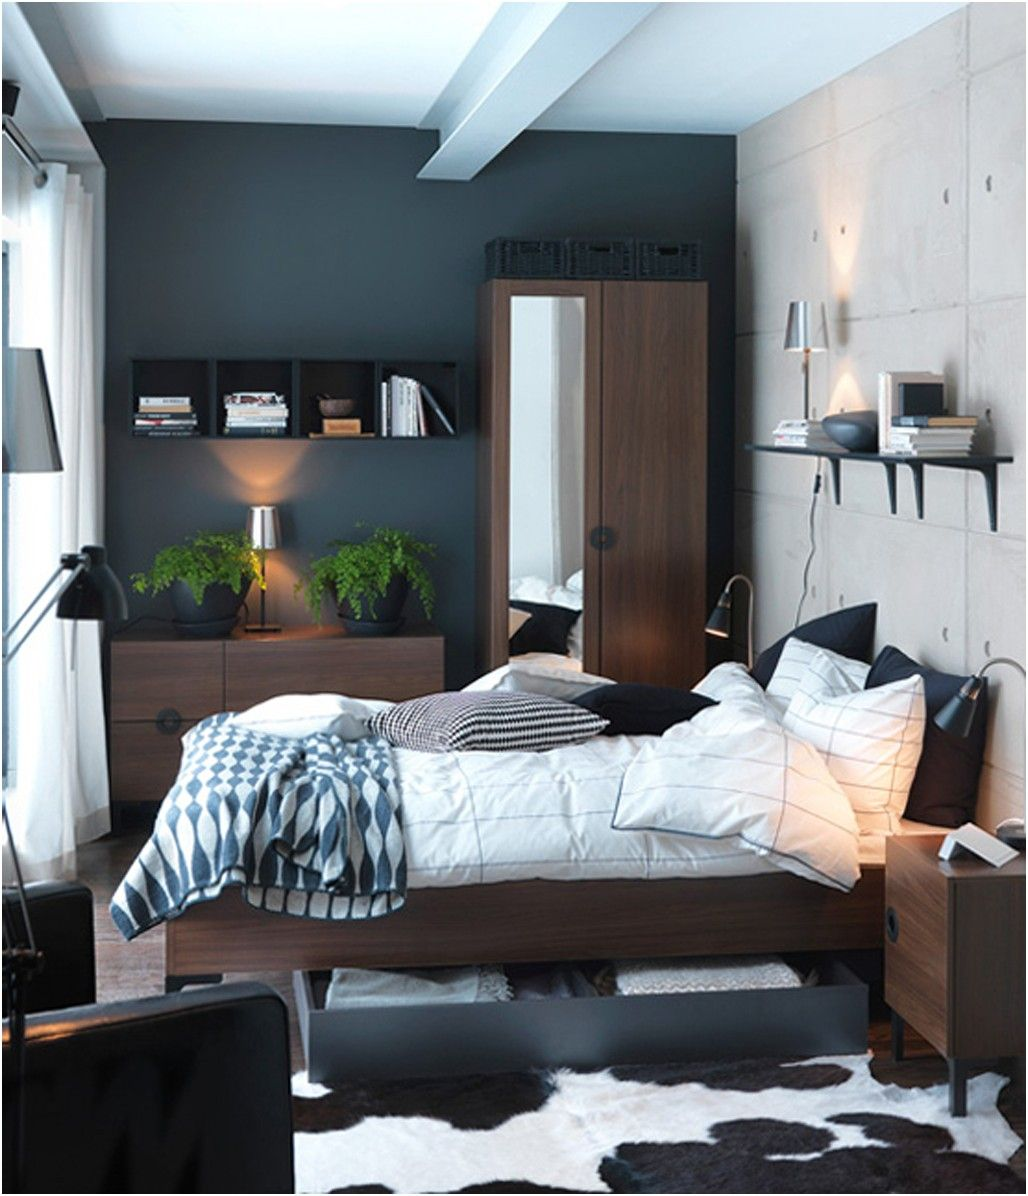 ikea bedroom ideas hemnes Google Search Small master